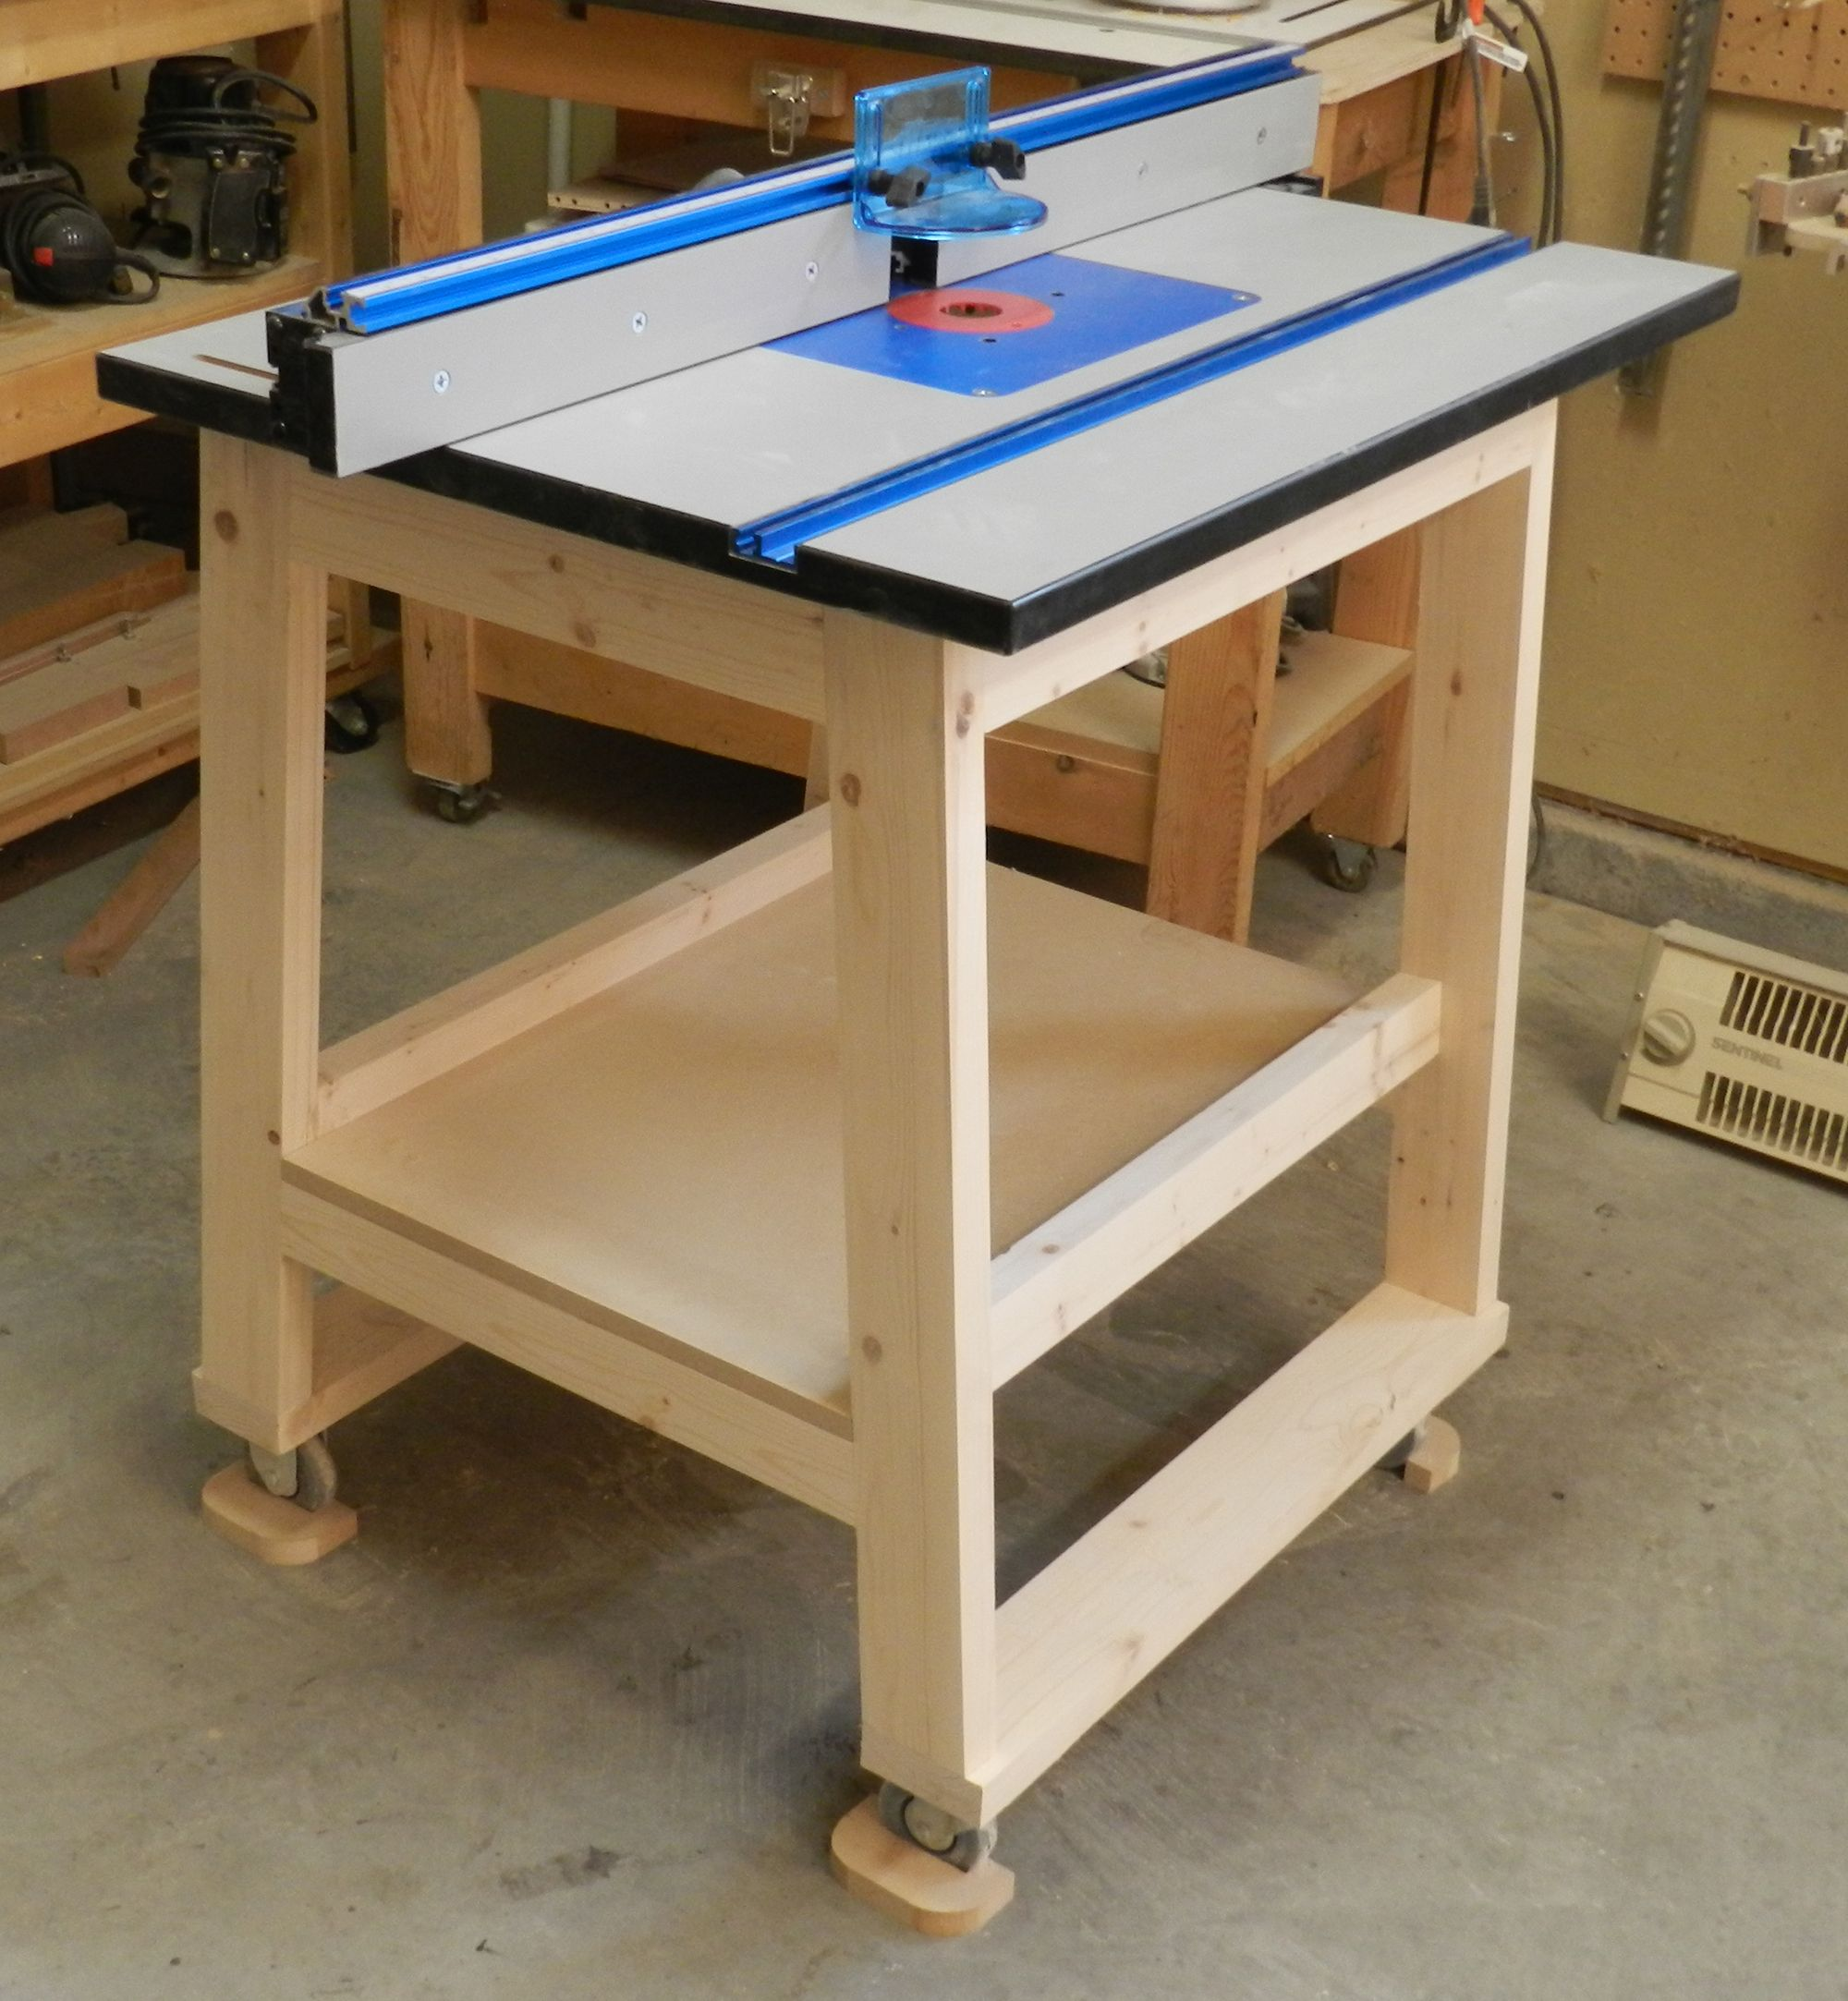 Wooden kreg router table plans diy blueprints kreg router table wooden kreg router table plans diy blueprints kreg router table plans 2 in 1 outdoor games keyboard keysfo Images